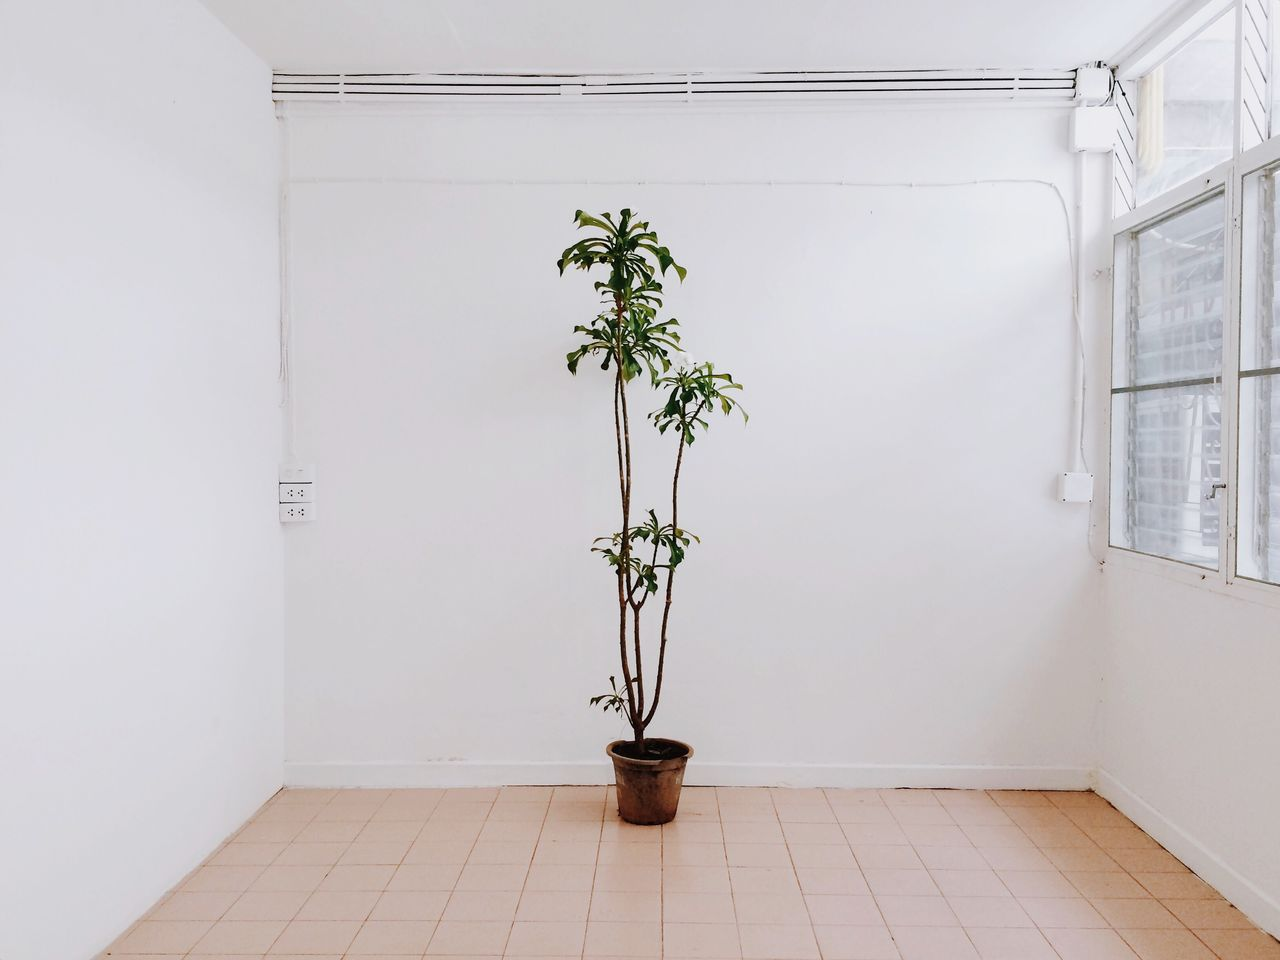 Potted Plant Against White Wall In Room At Home